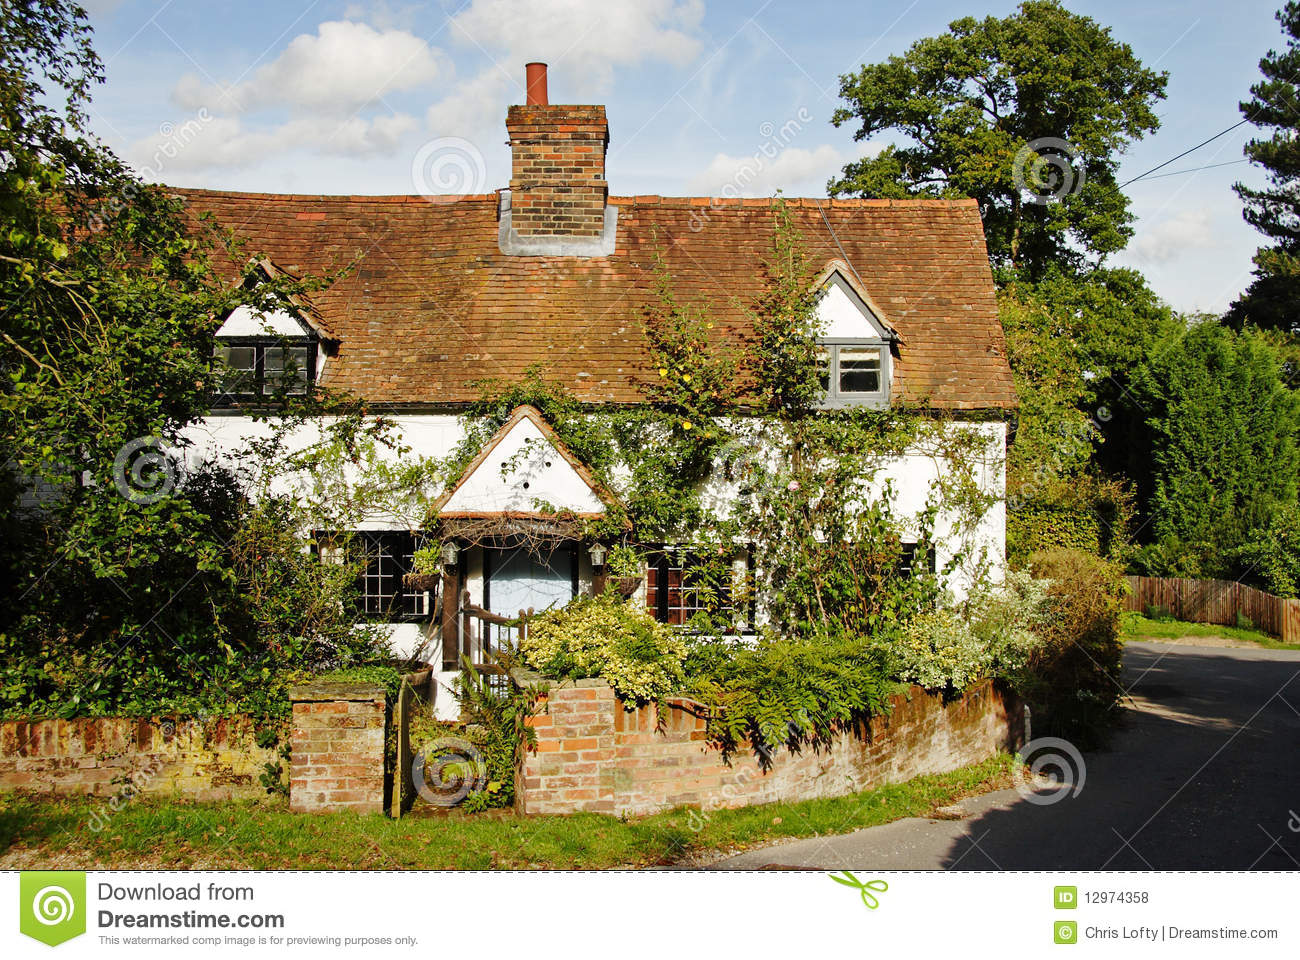 English Village Cottage And Garden Stock Photo - Image of flowers ...